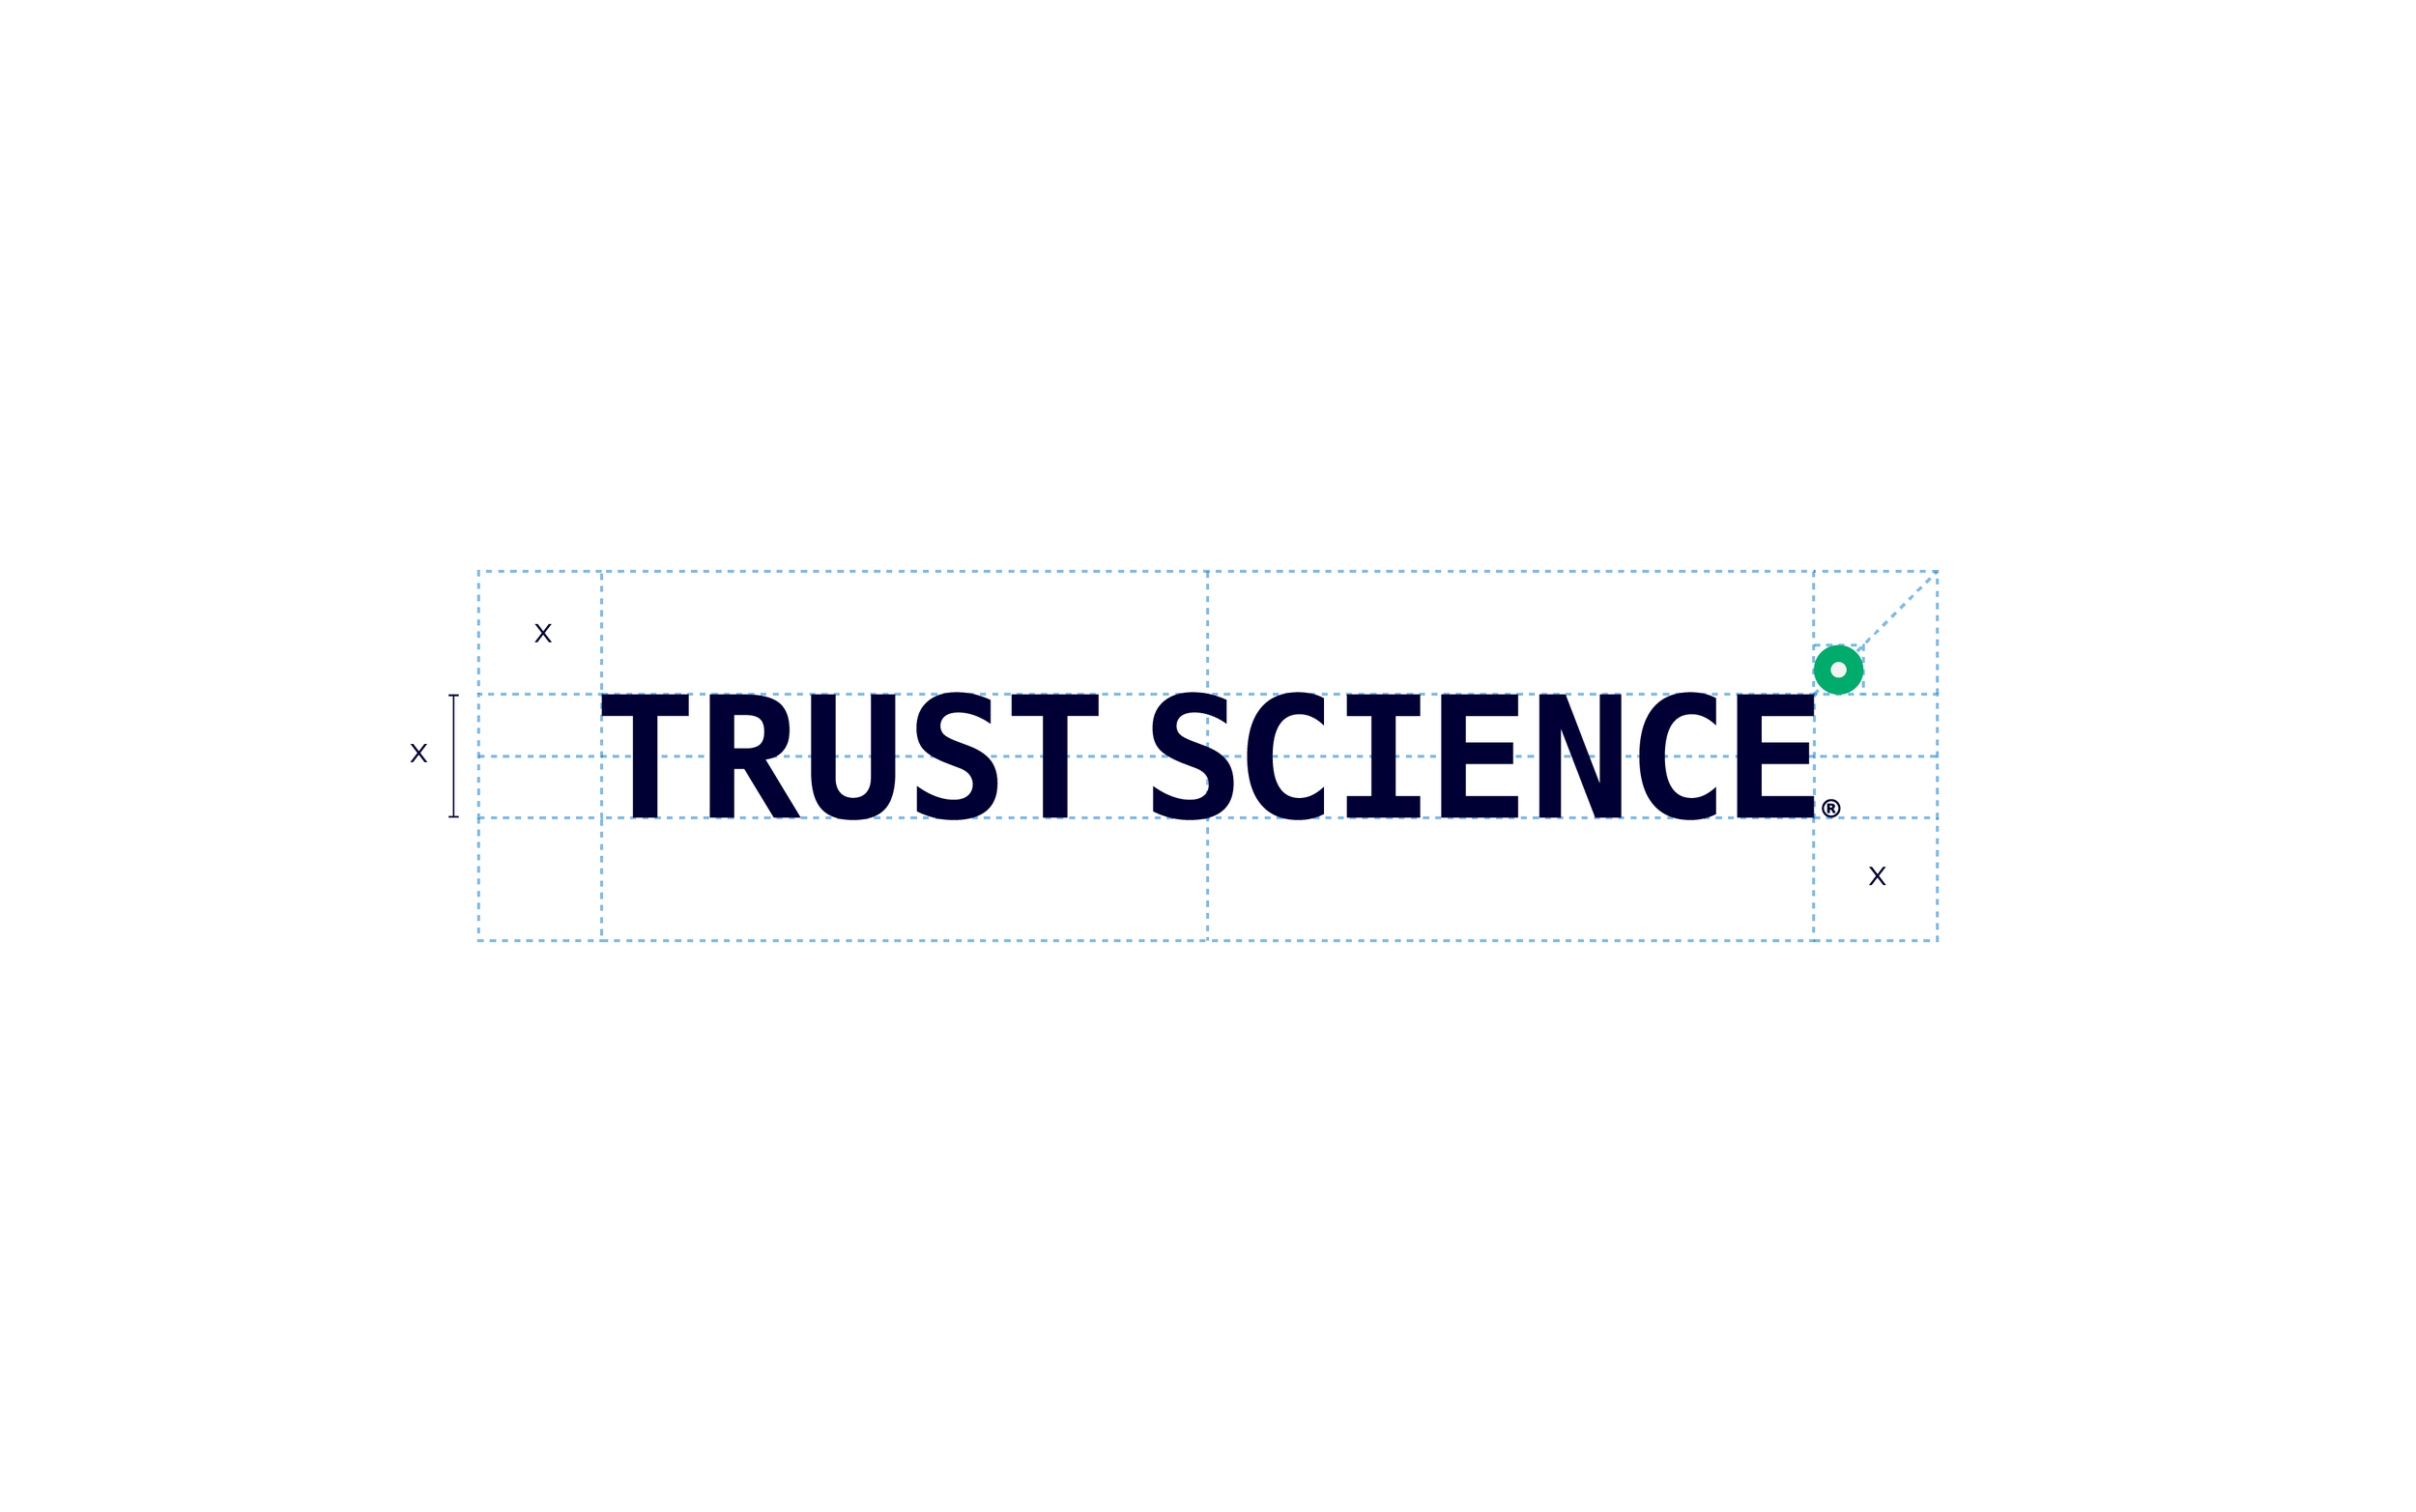 PRIMARY LOGO HORIZONTAL : CLEAR SPACE